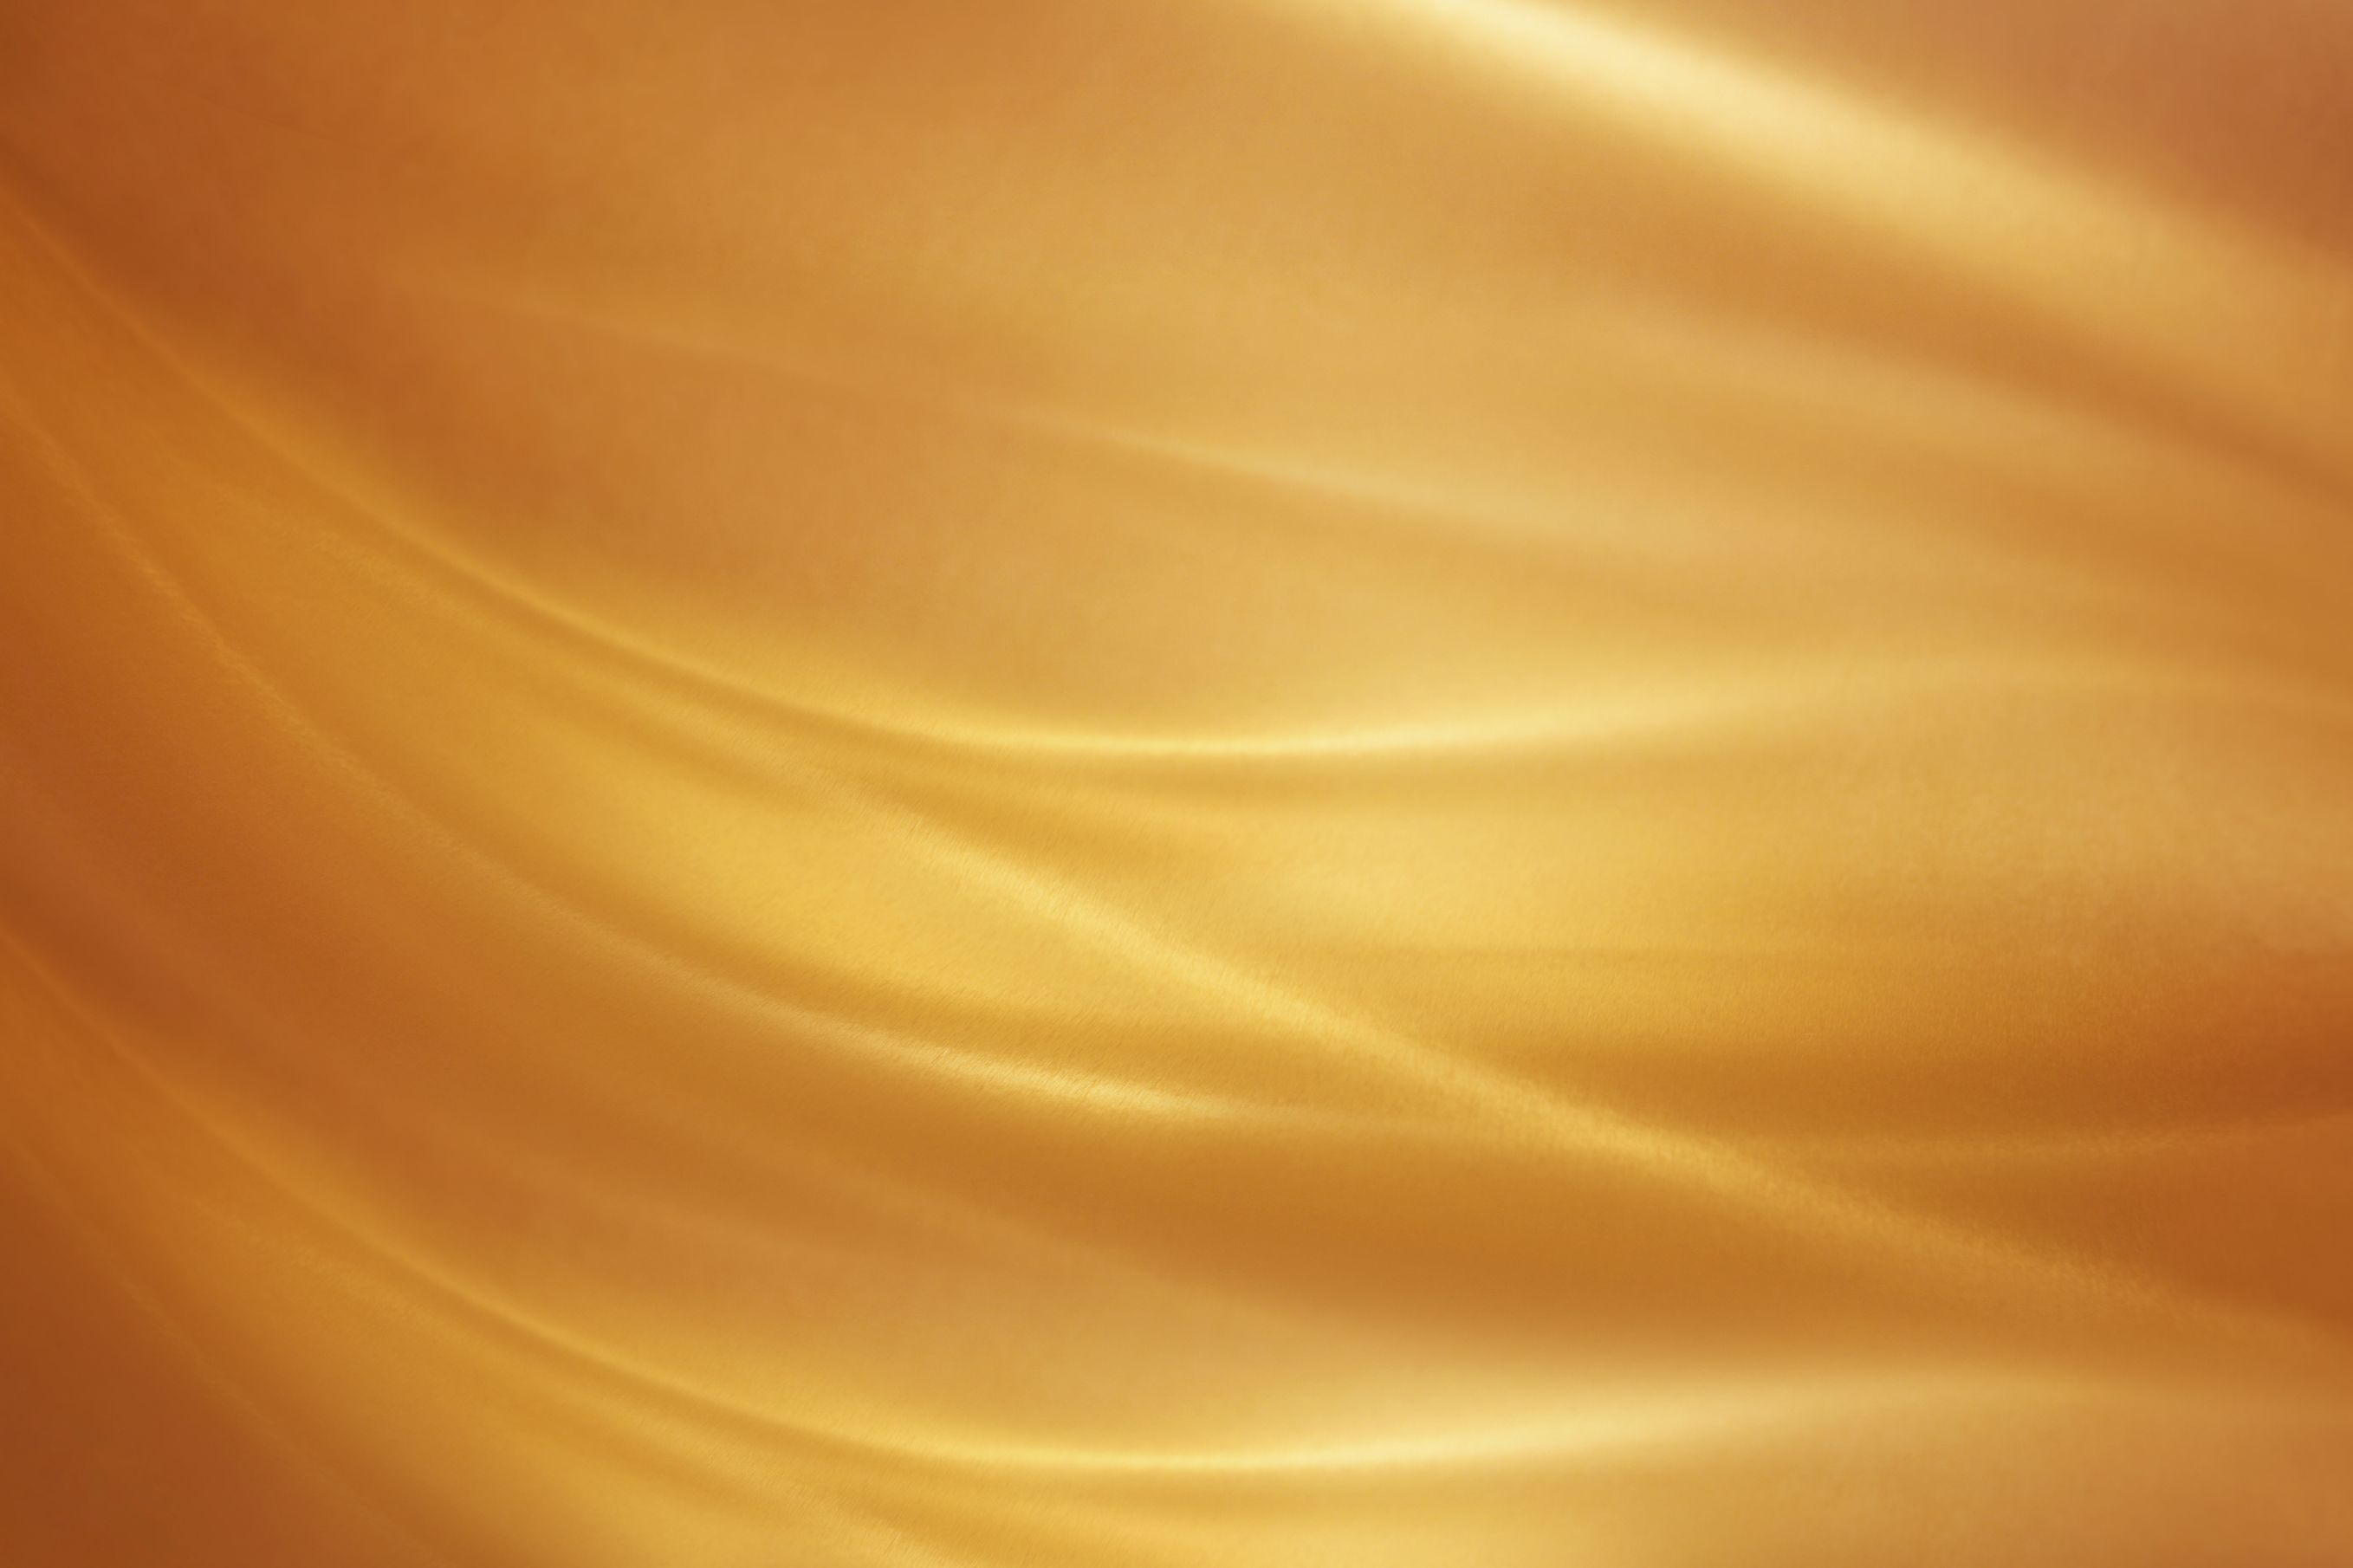 9ef926744593 net wp content uploads 2014 02 Gold satin background